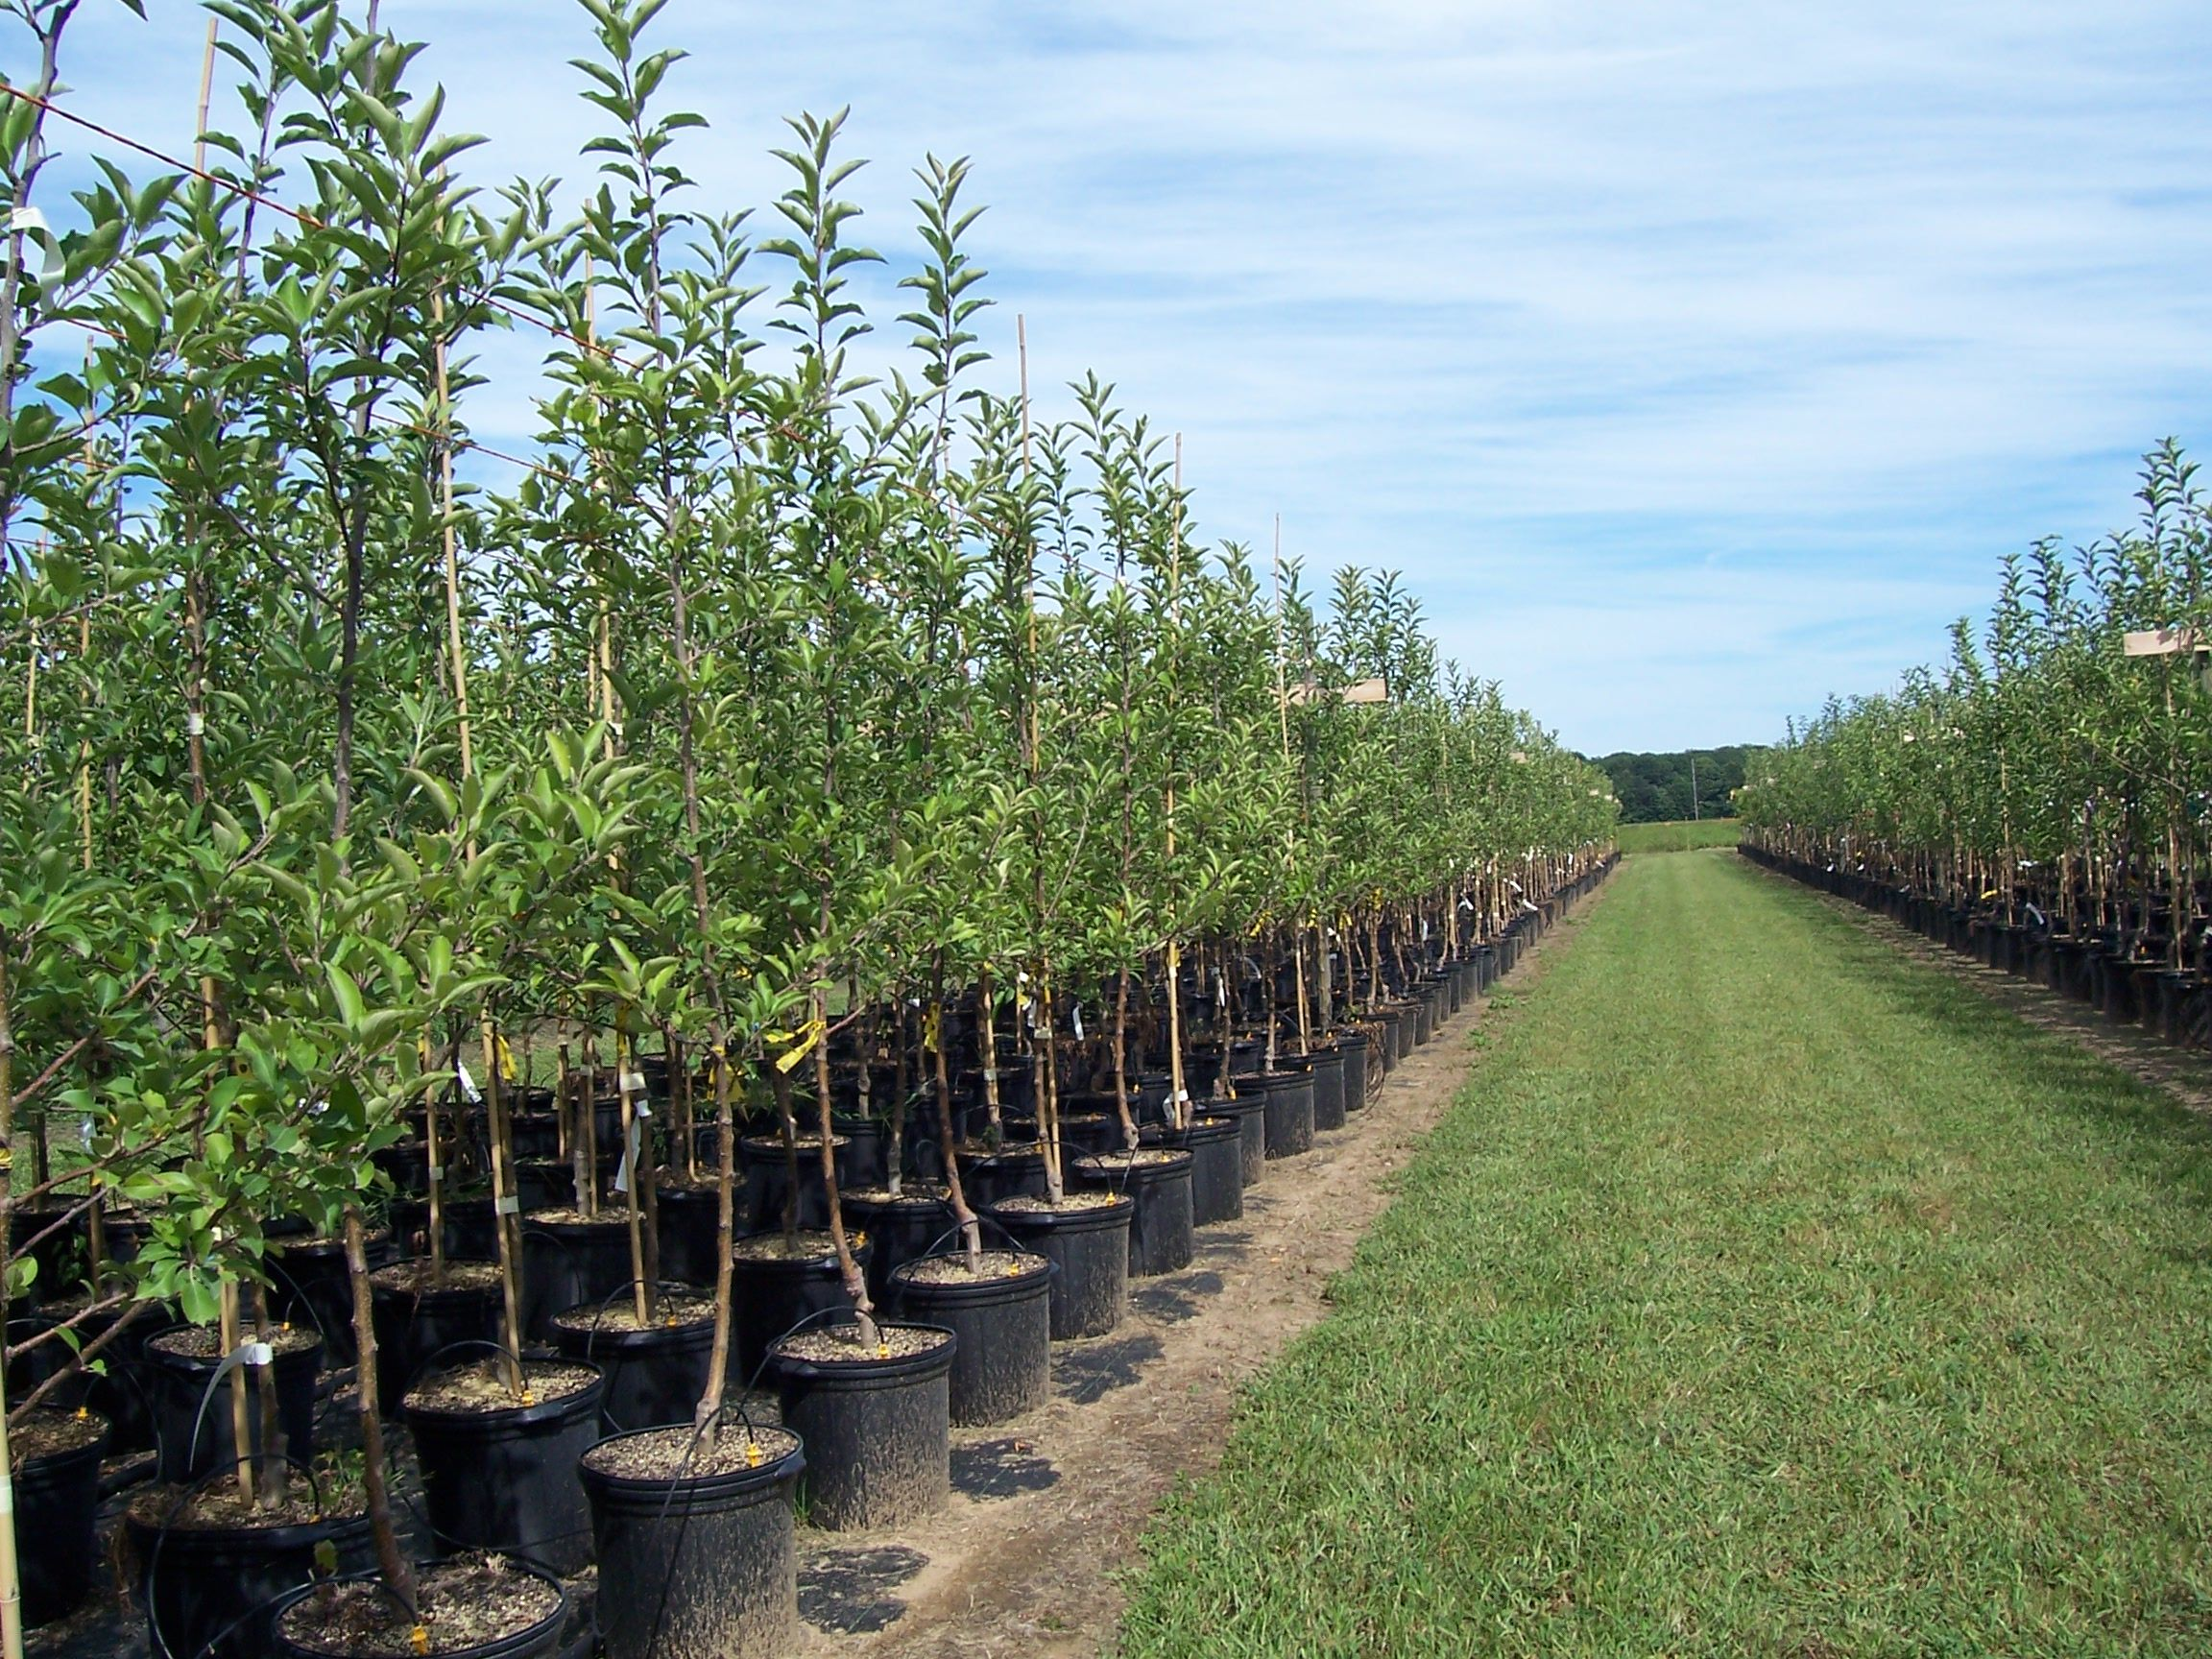 Tree Nursery Google Search 21 Best Garden Air Pruning Images On Pinterest Container